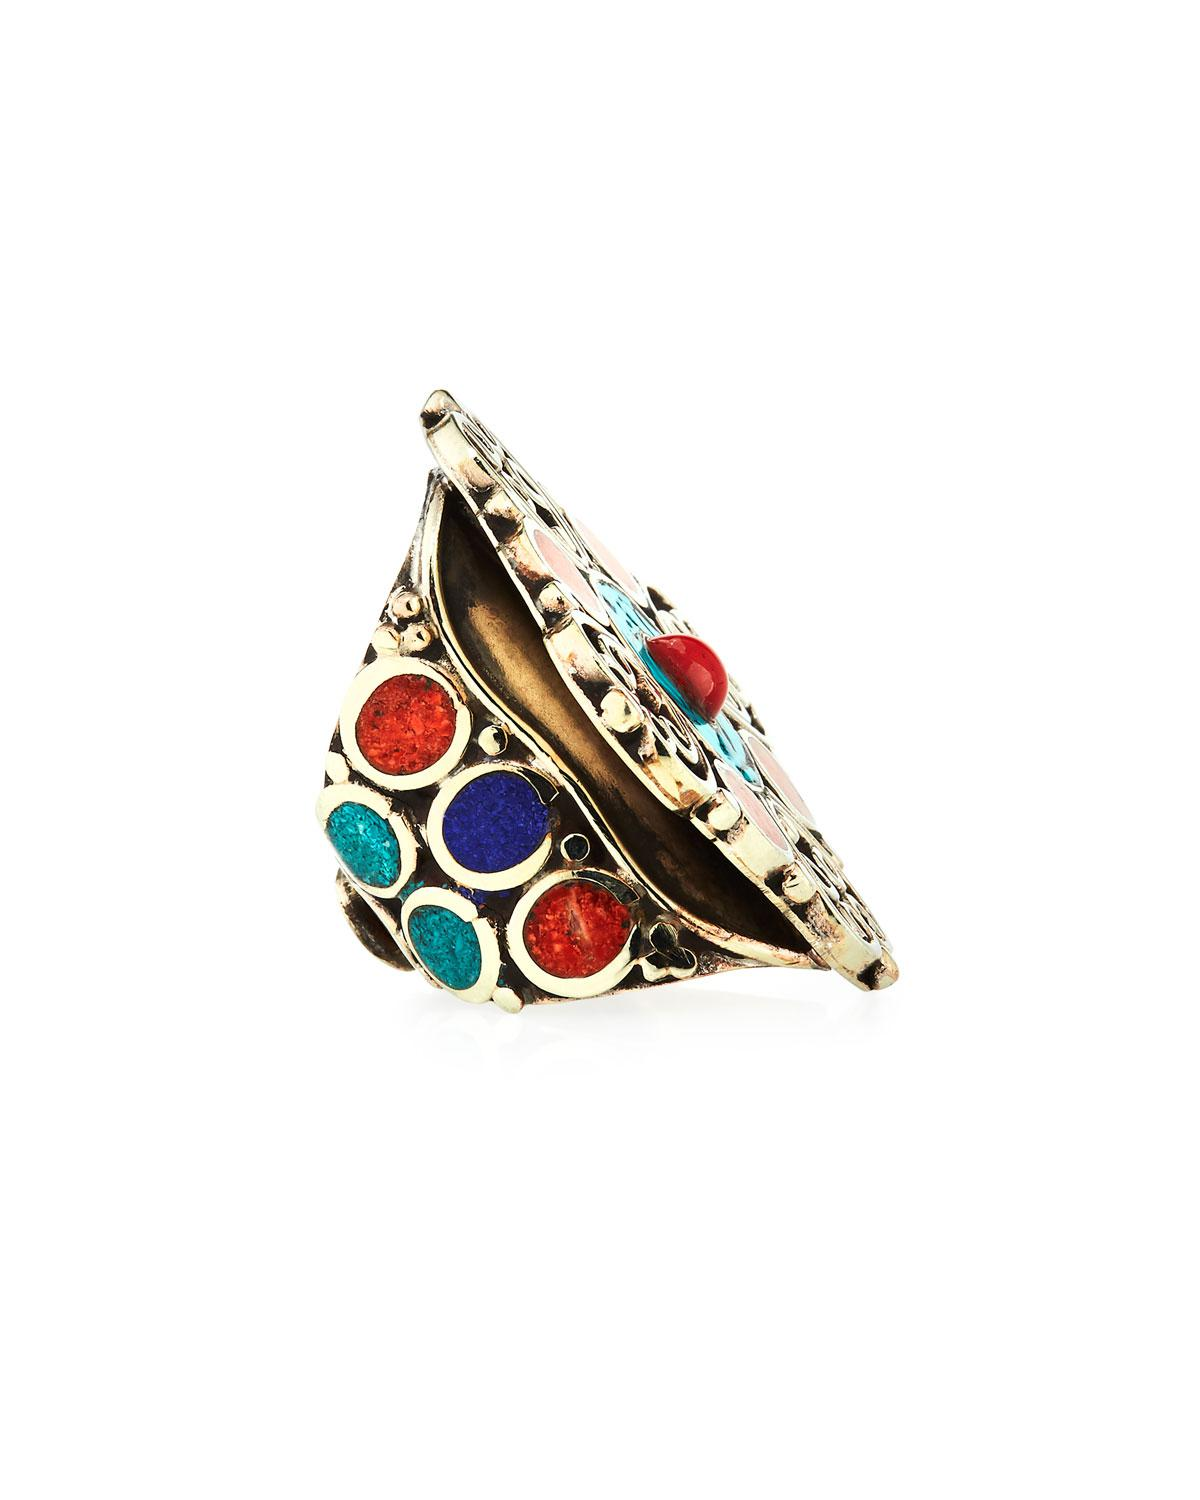 Devon Leigh Coral & Turquoise Adjustable Flower Ring 6ZXEA